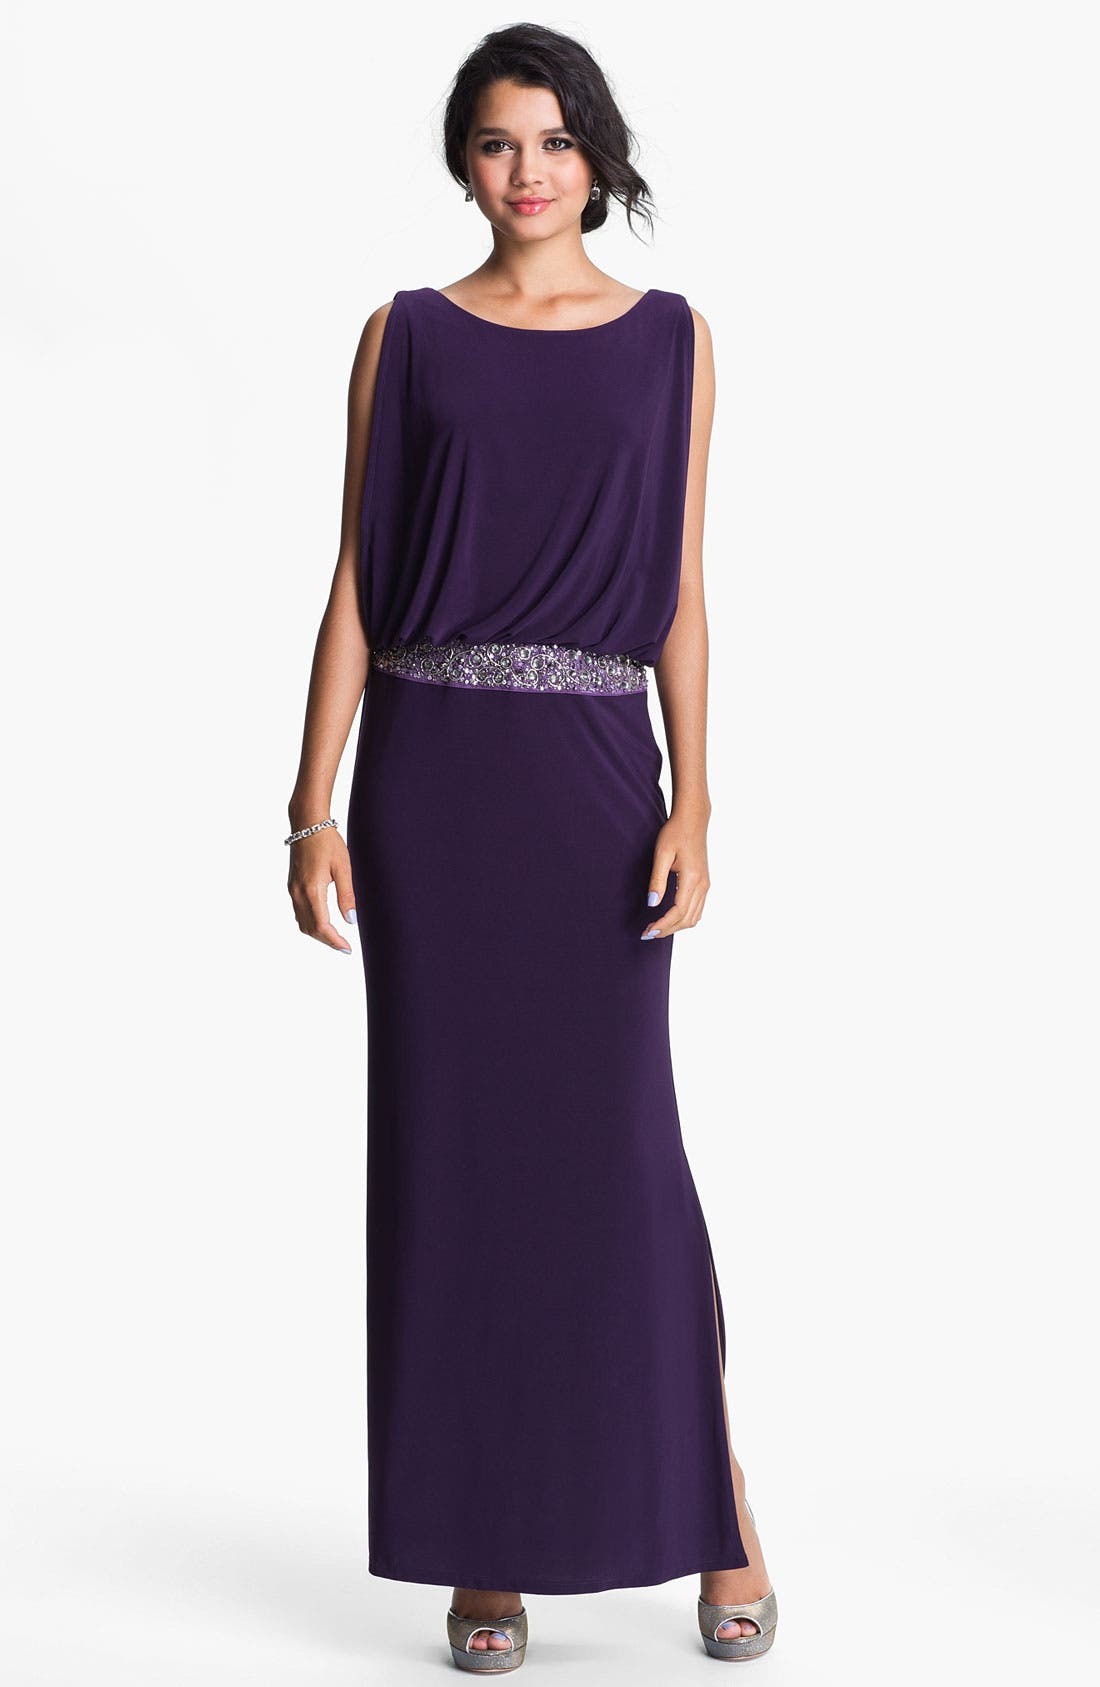 Alternate Image 1 Selected - JS Boutique Back Keyhole Embellished Blouson Jersey Gown